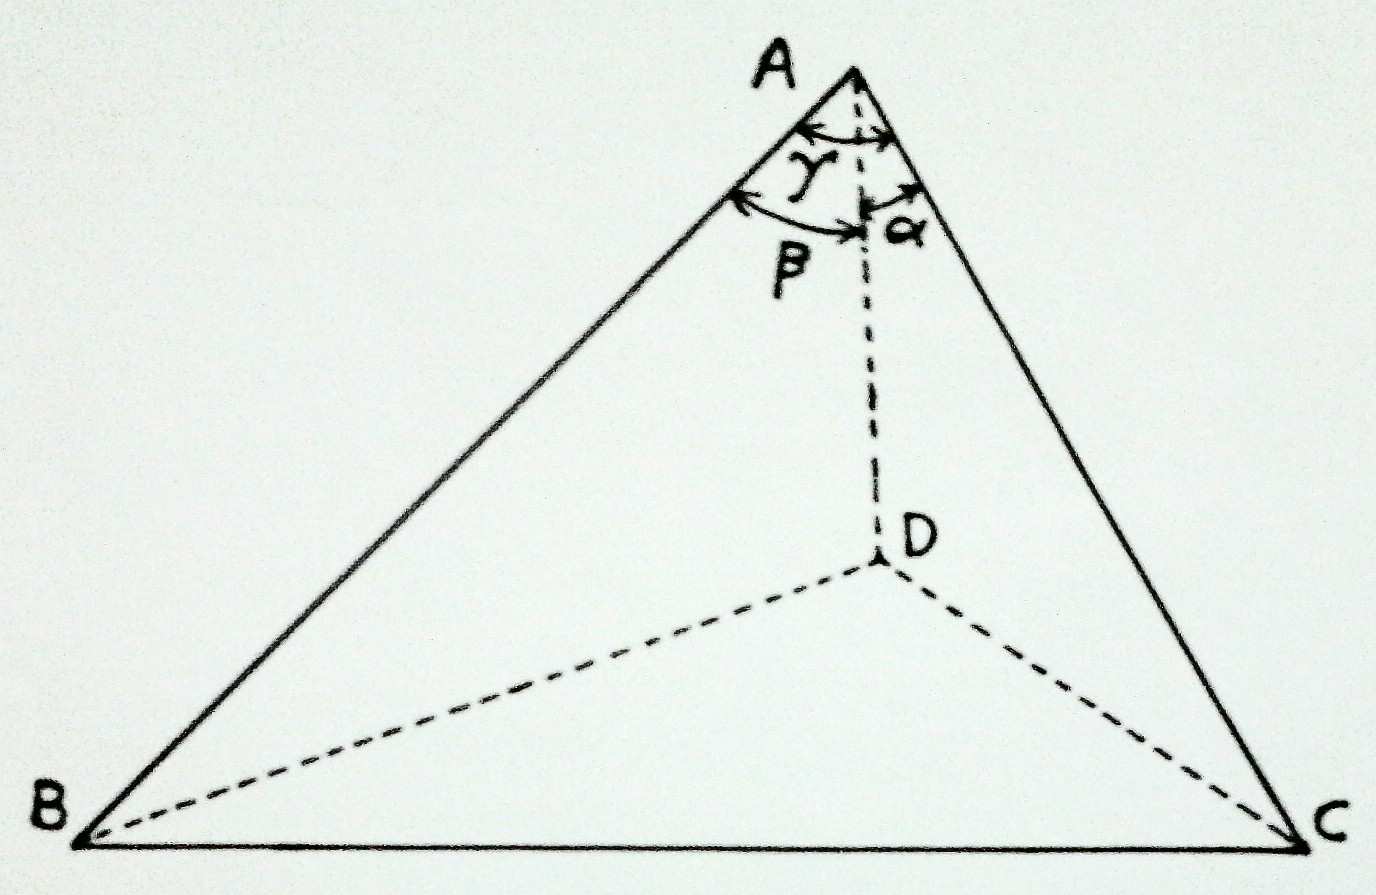 How To Find Out The Solid Angle Subtended By A Tetrahedron